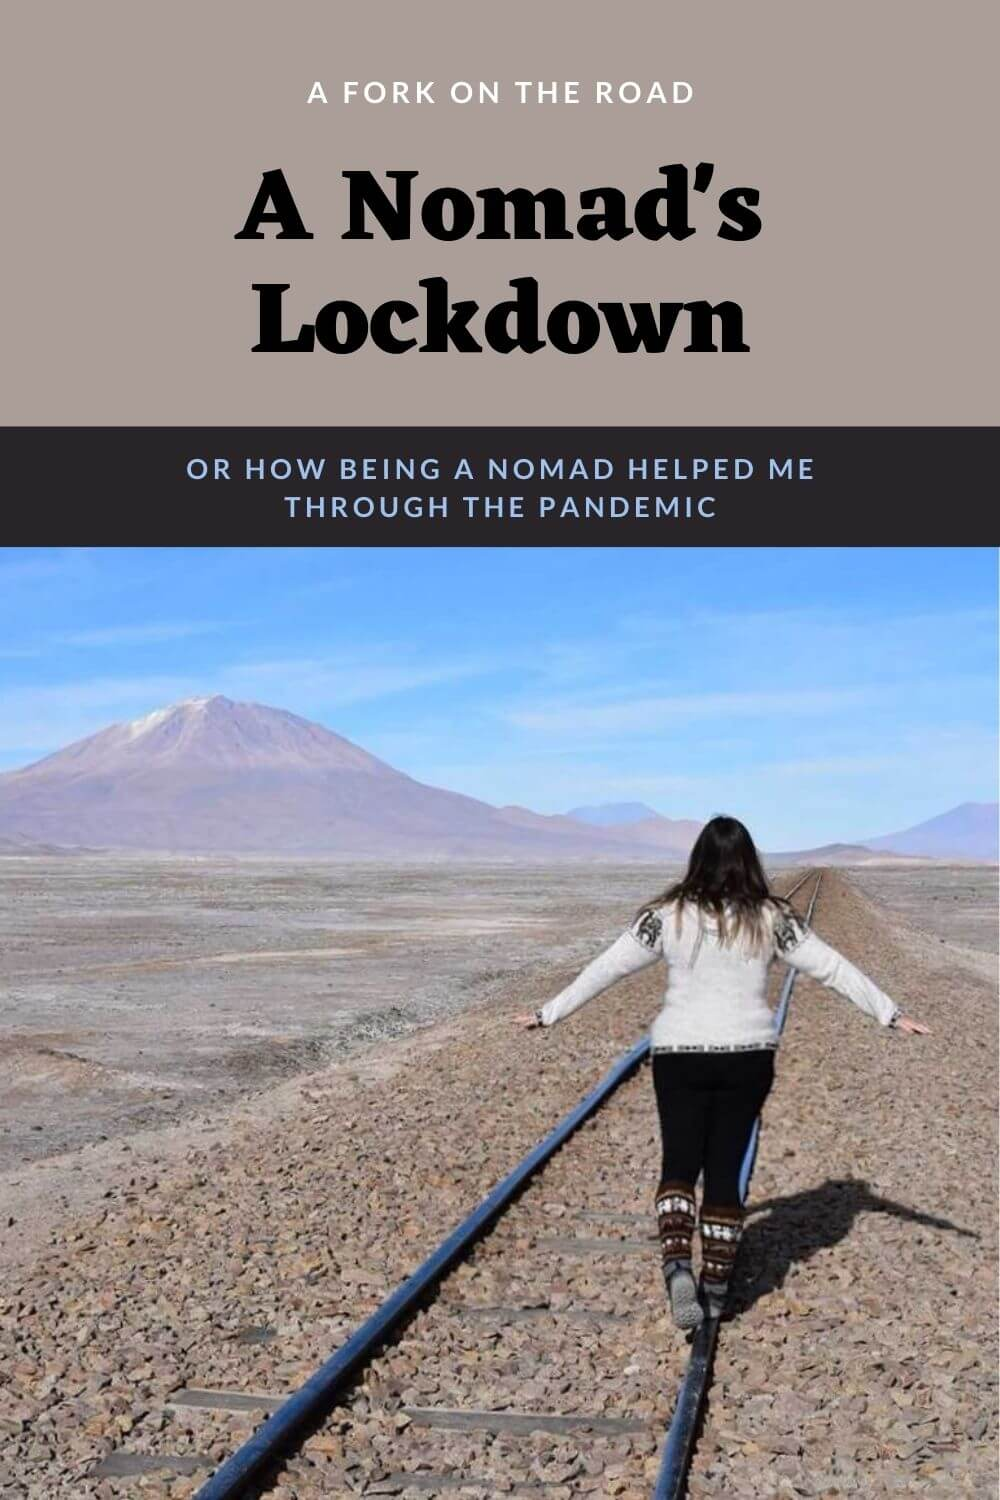 Pin of Iris trying to keep her balance when walking on the tracks of a railroad traversing the Bolivian desert of Uyuni. The title reads: A Nomad's Lockdown, or how being a traveler helped me through the pandemic.